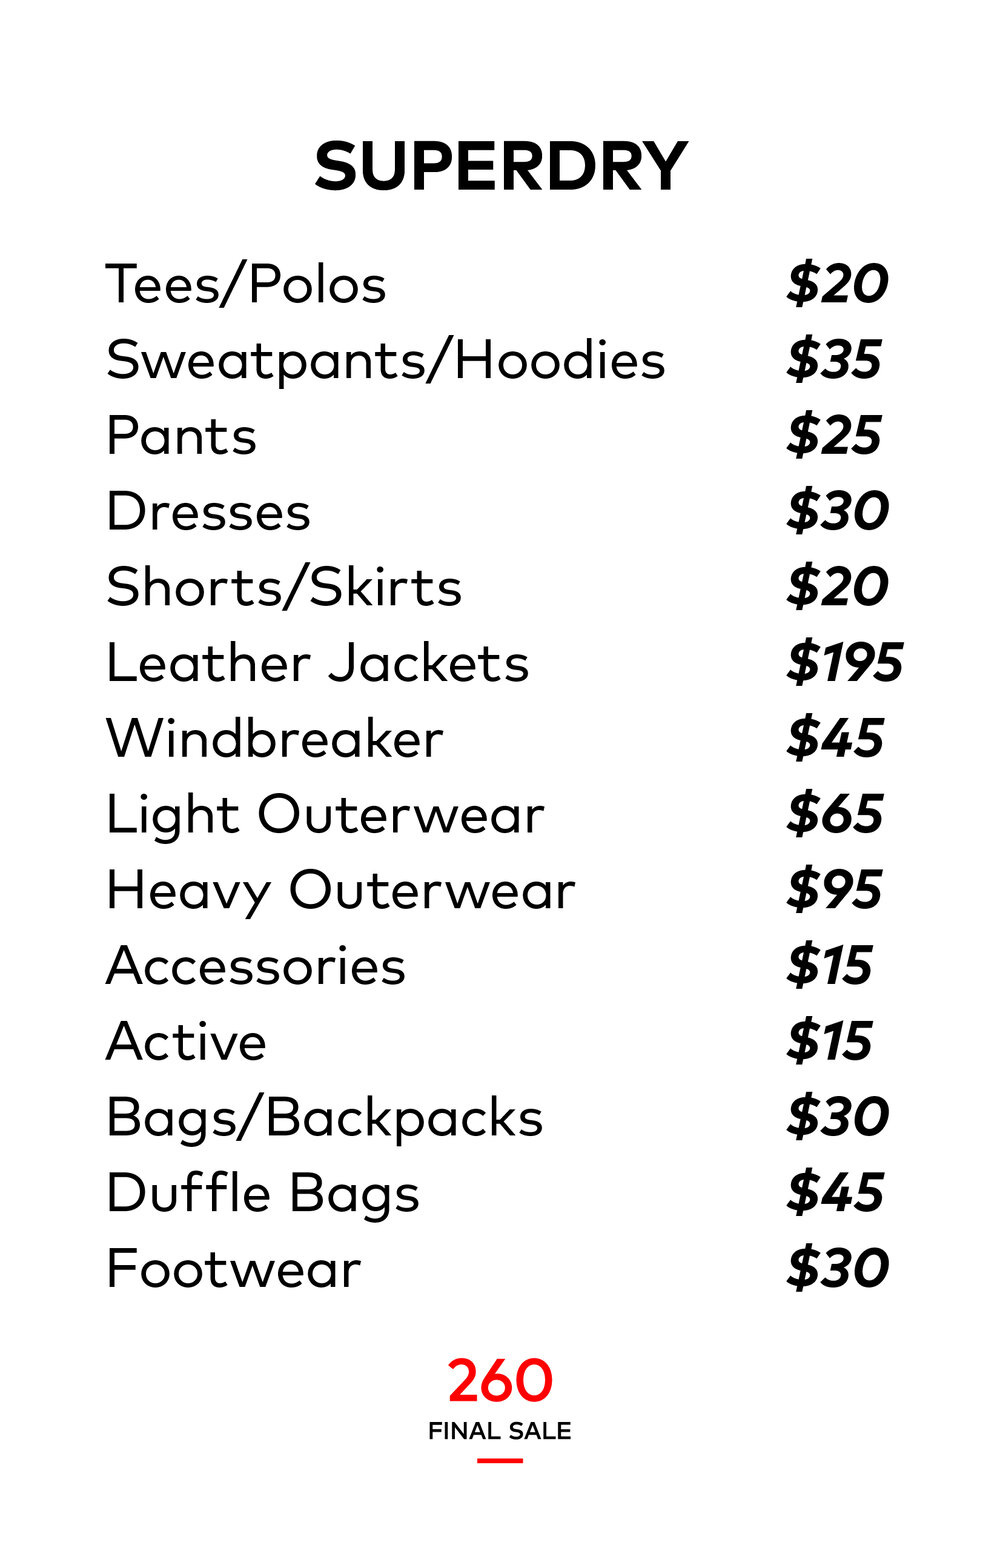 Superdry Sample Sale Price List